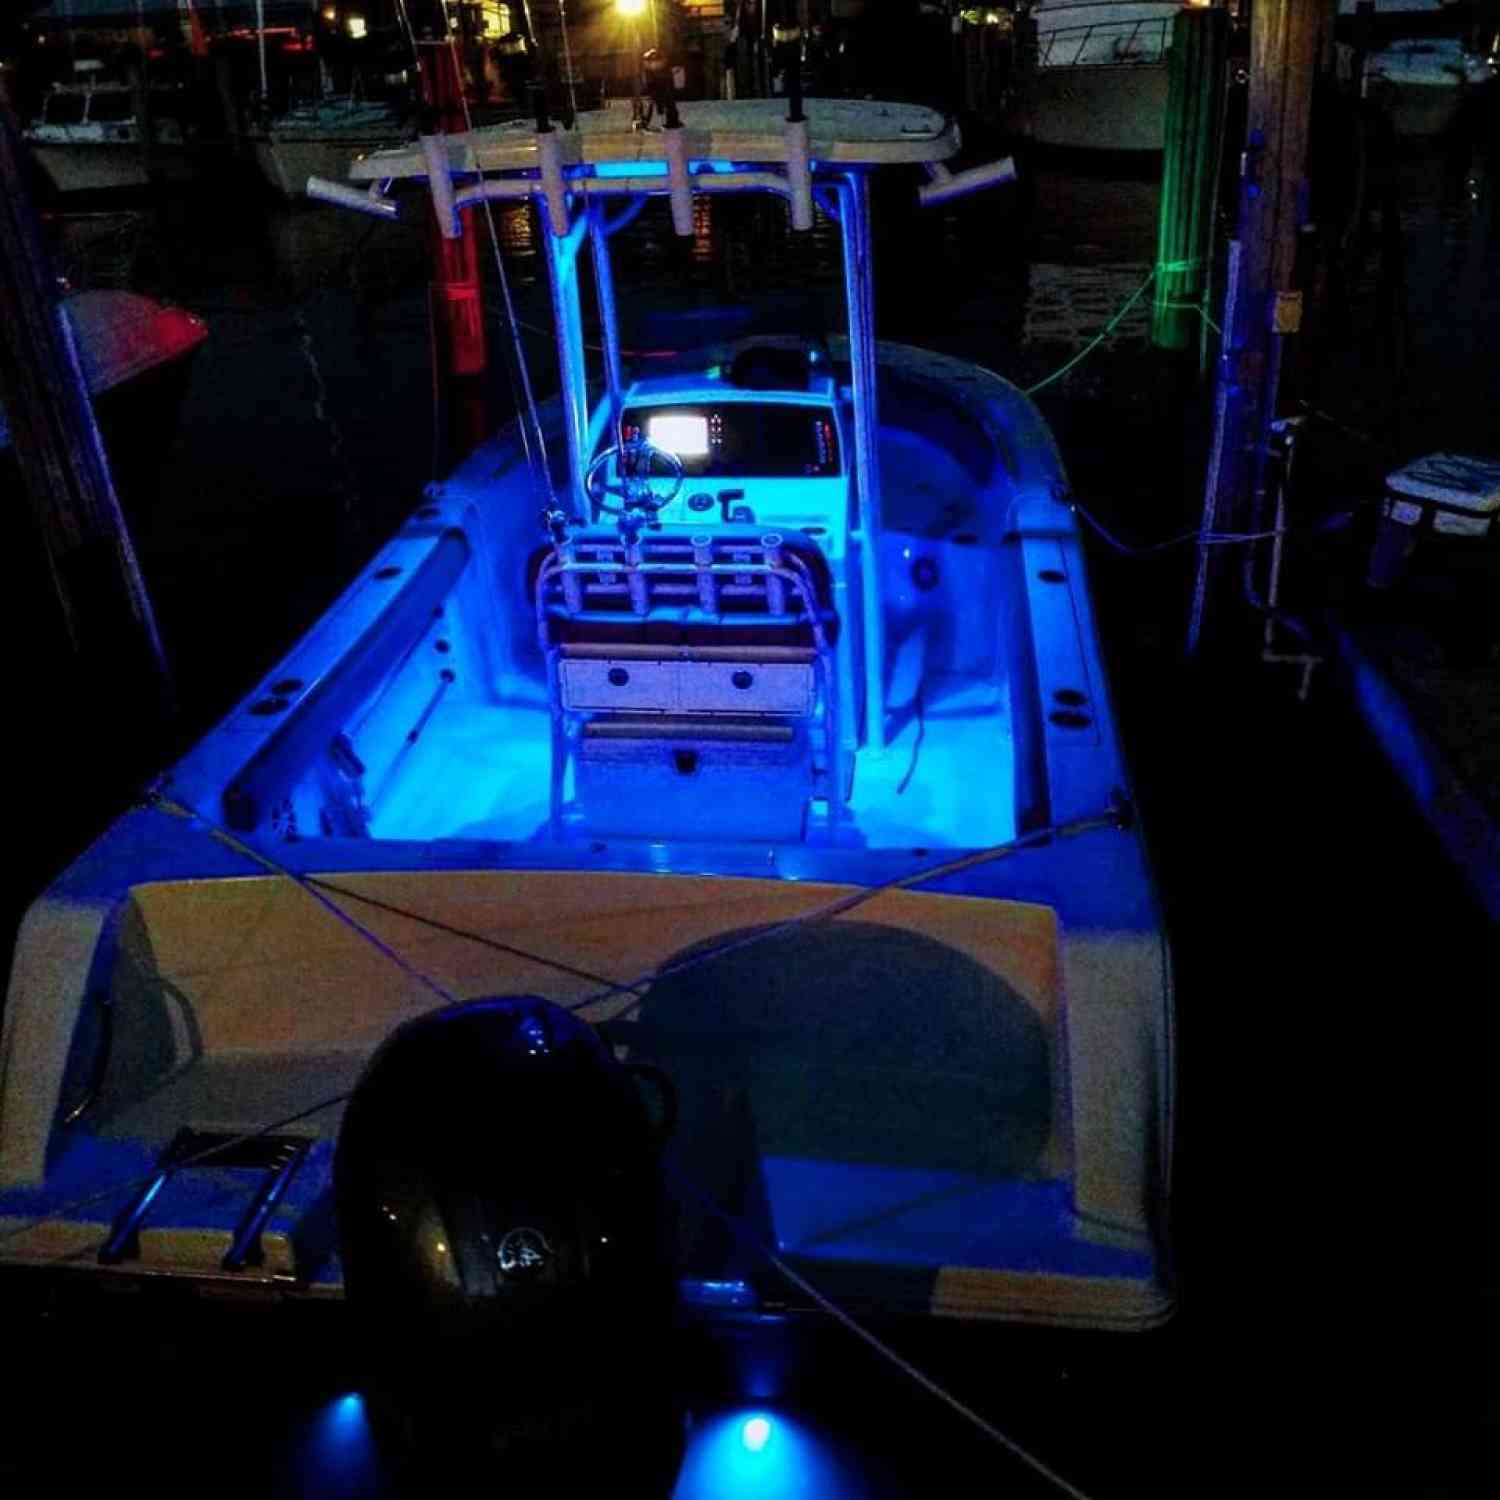 Title: First pic w/ lights - On board their Sportsman Heritage 231 Center Console - Location: Grasonville, MD. Participating in the Photo Contest #SportsmanFebruary2019